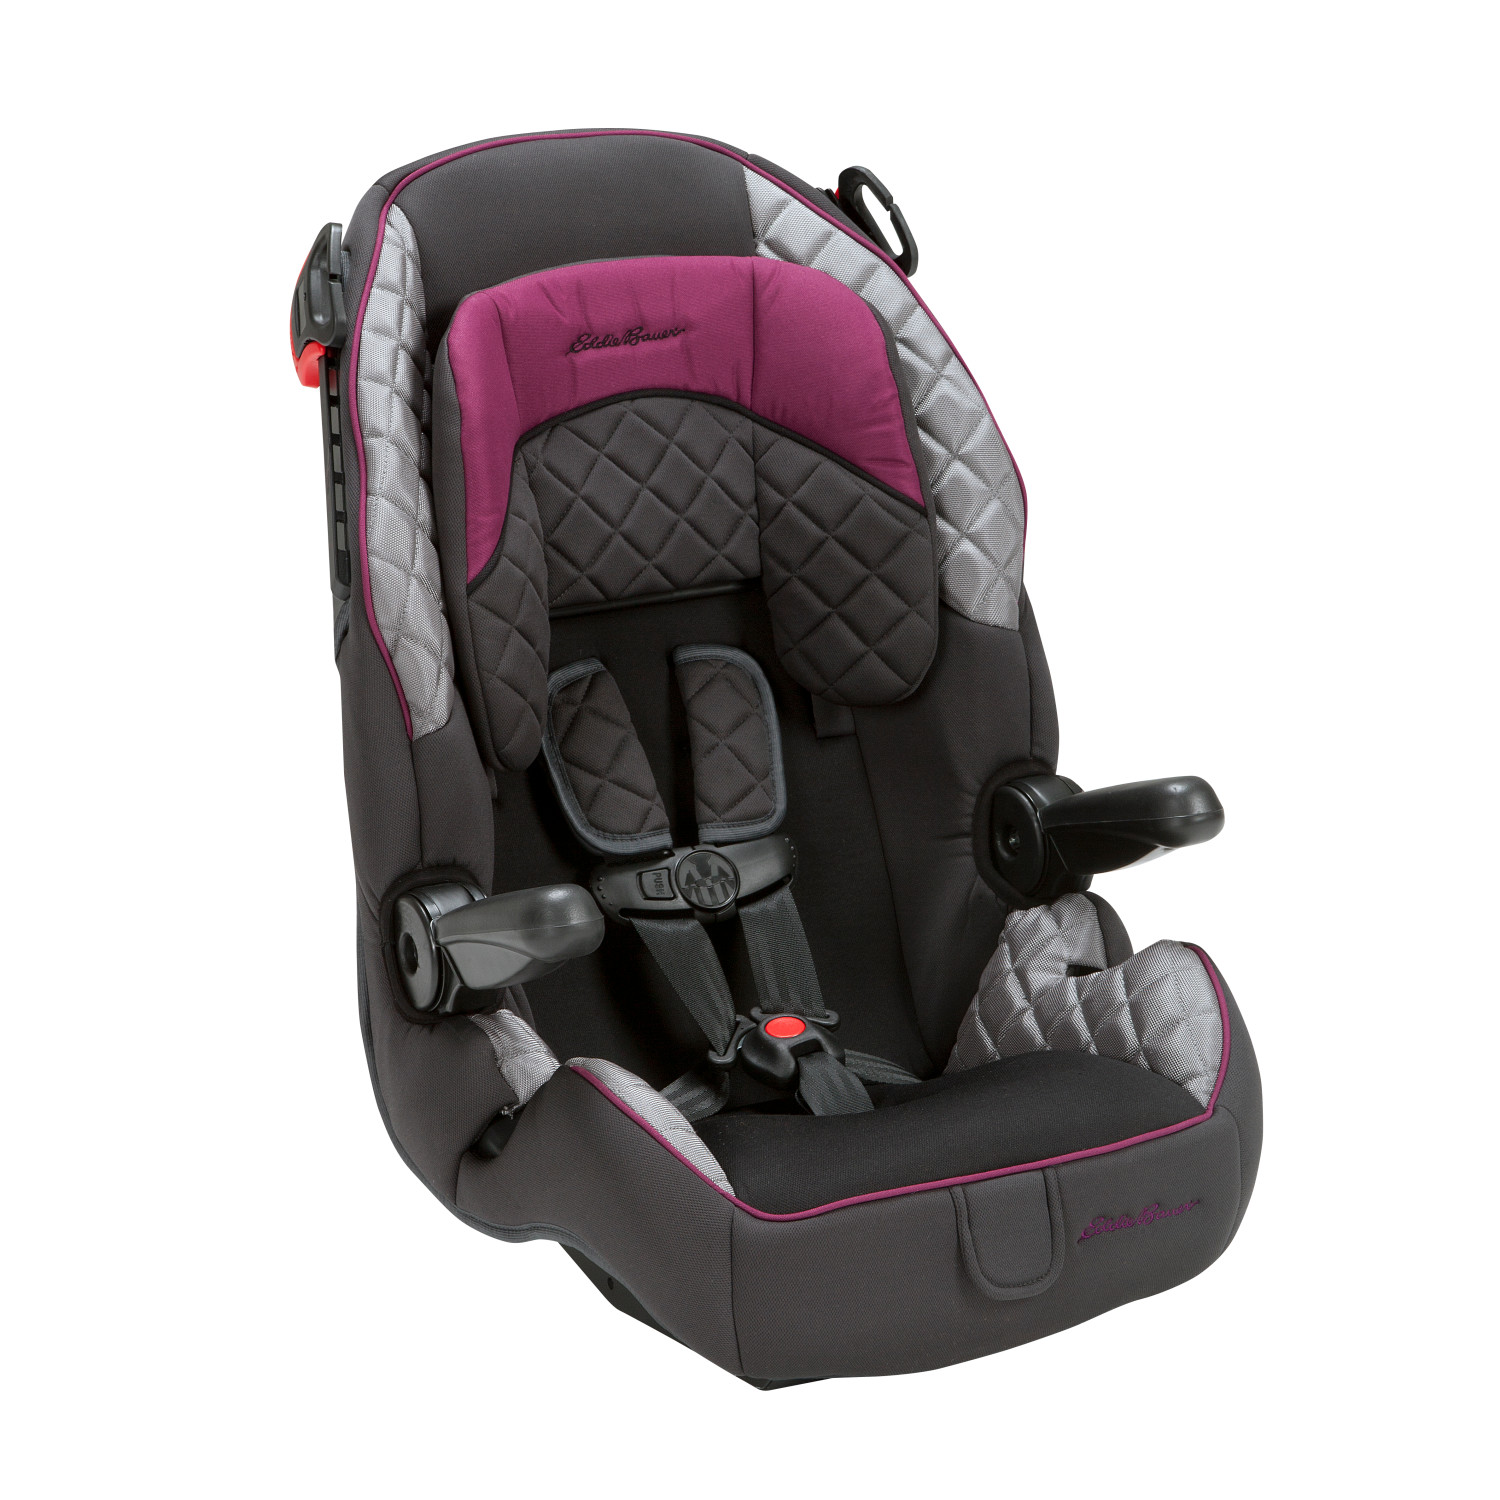 eddie bauer deluxe harness 65 booster car seat ebay. Black Bedroom Furniture Sets. Home Design Ideas